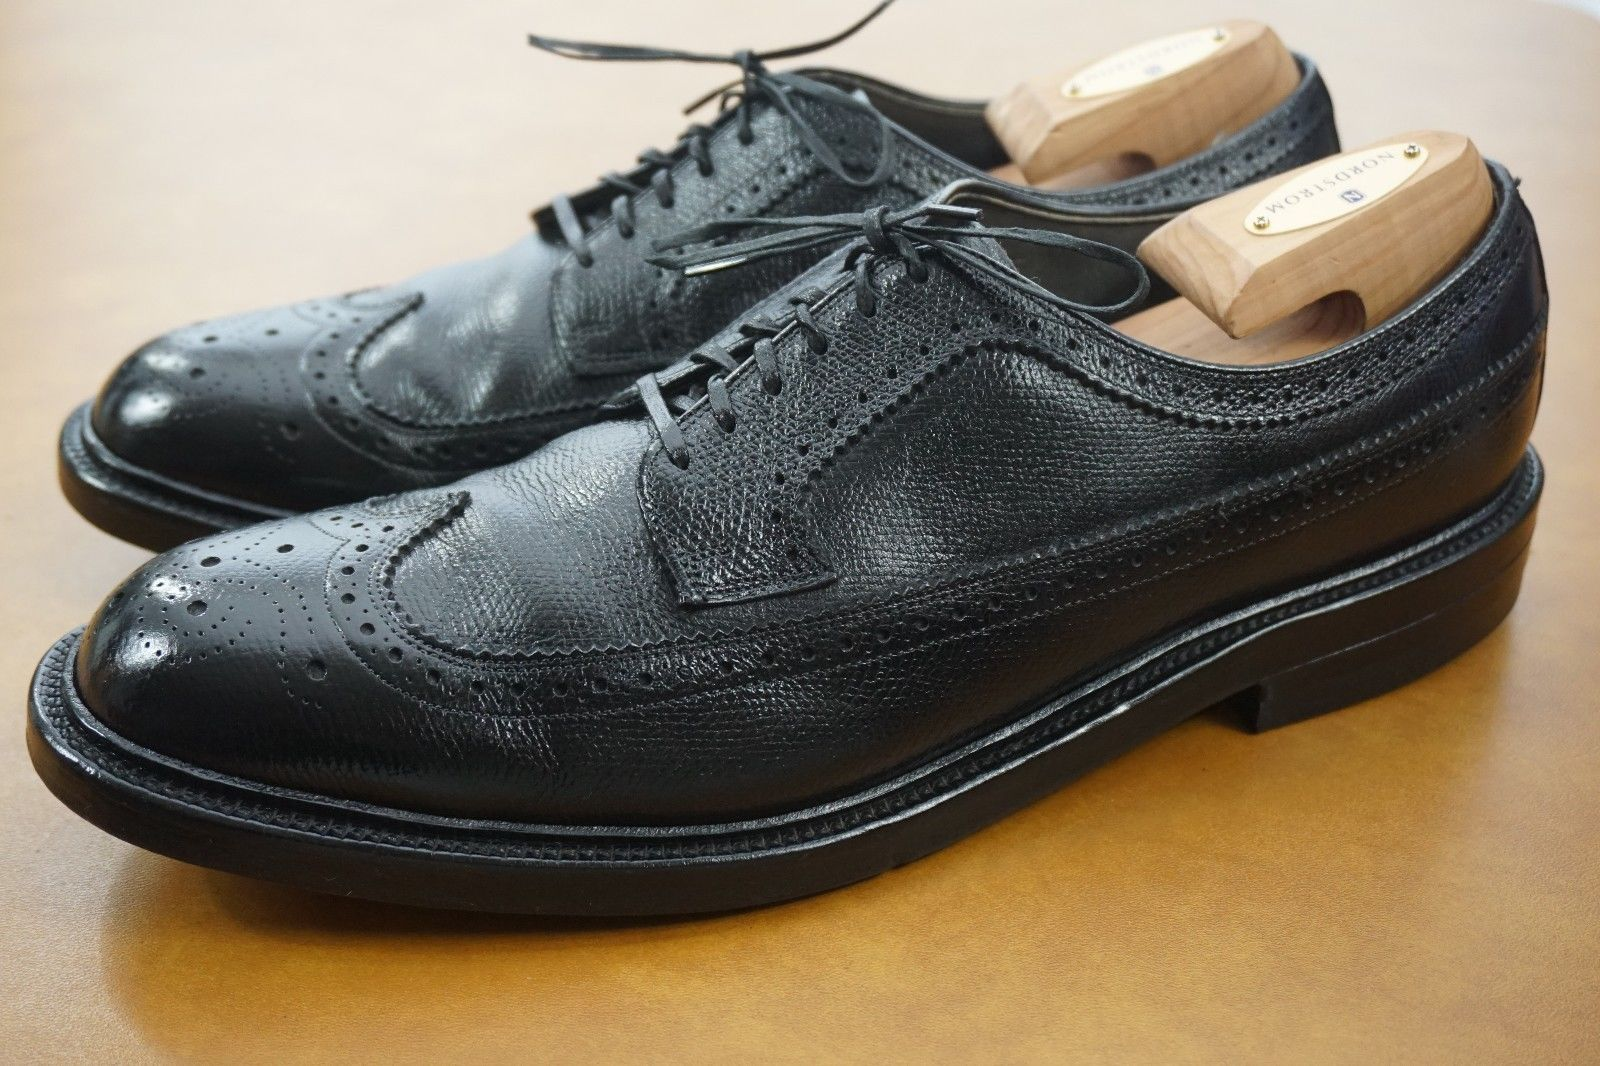 US $49.99 Pre-owned in Clothing, Shoes & Accessories, Men's Shoes, Dress/Formal